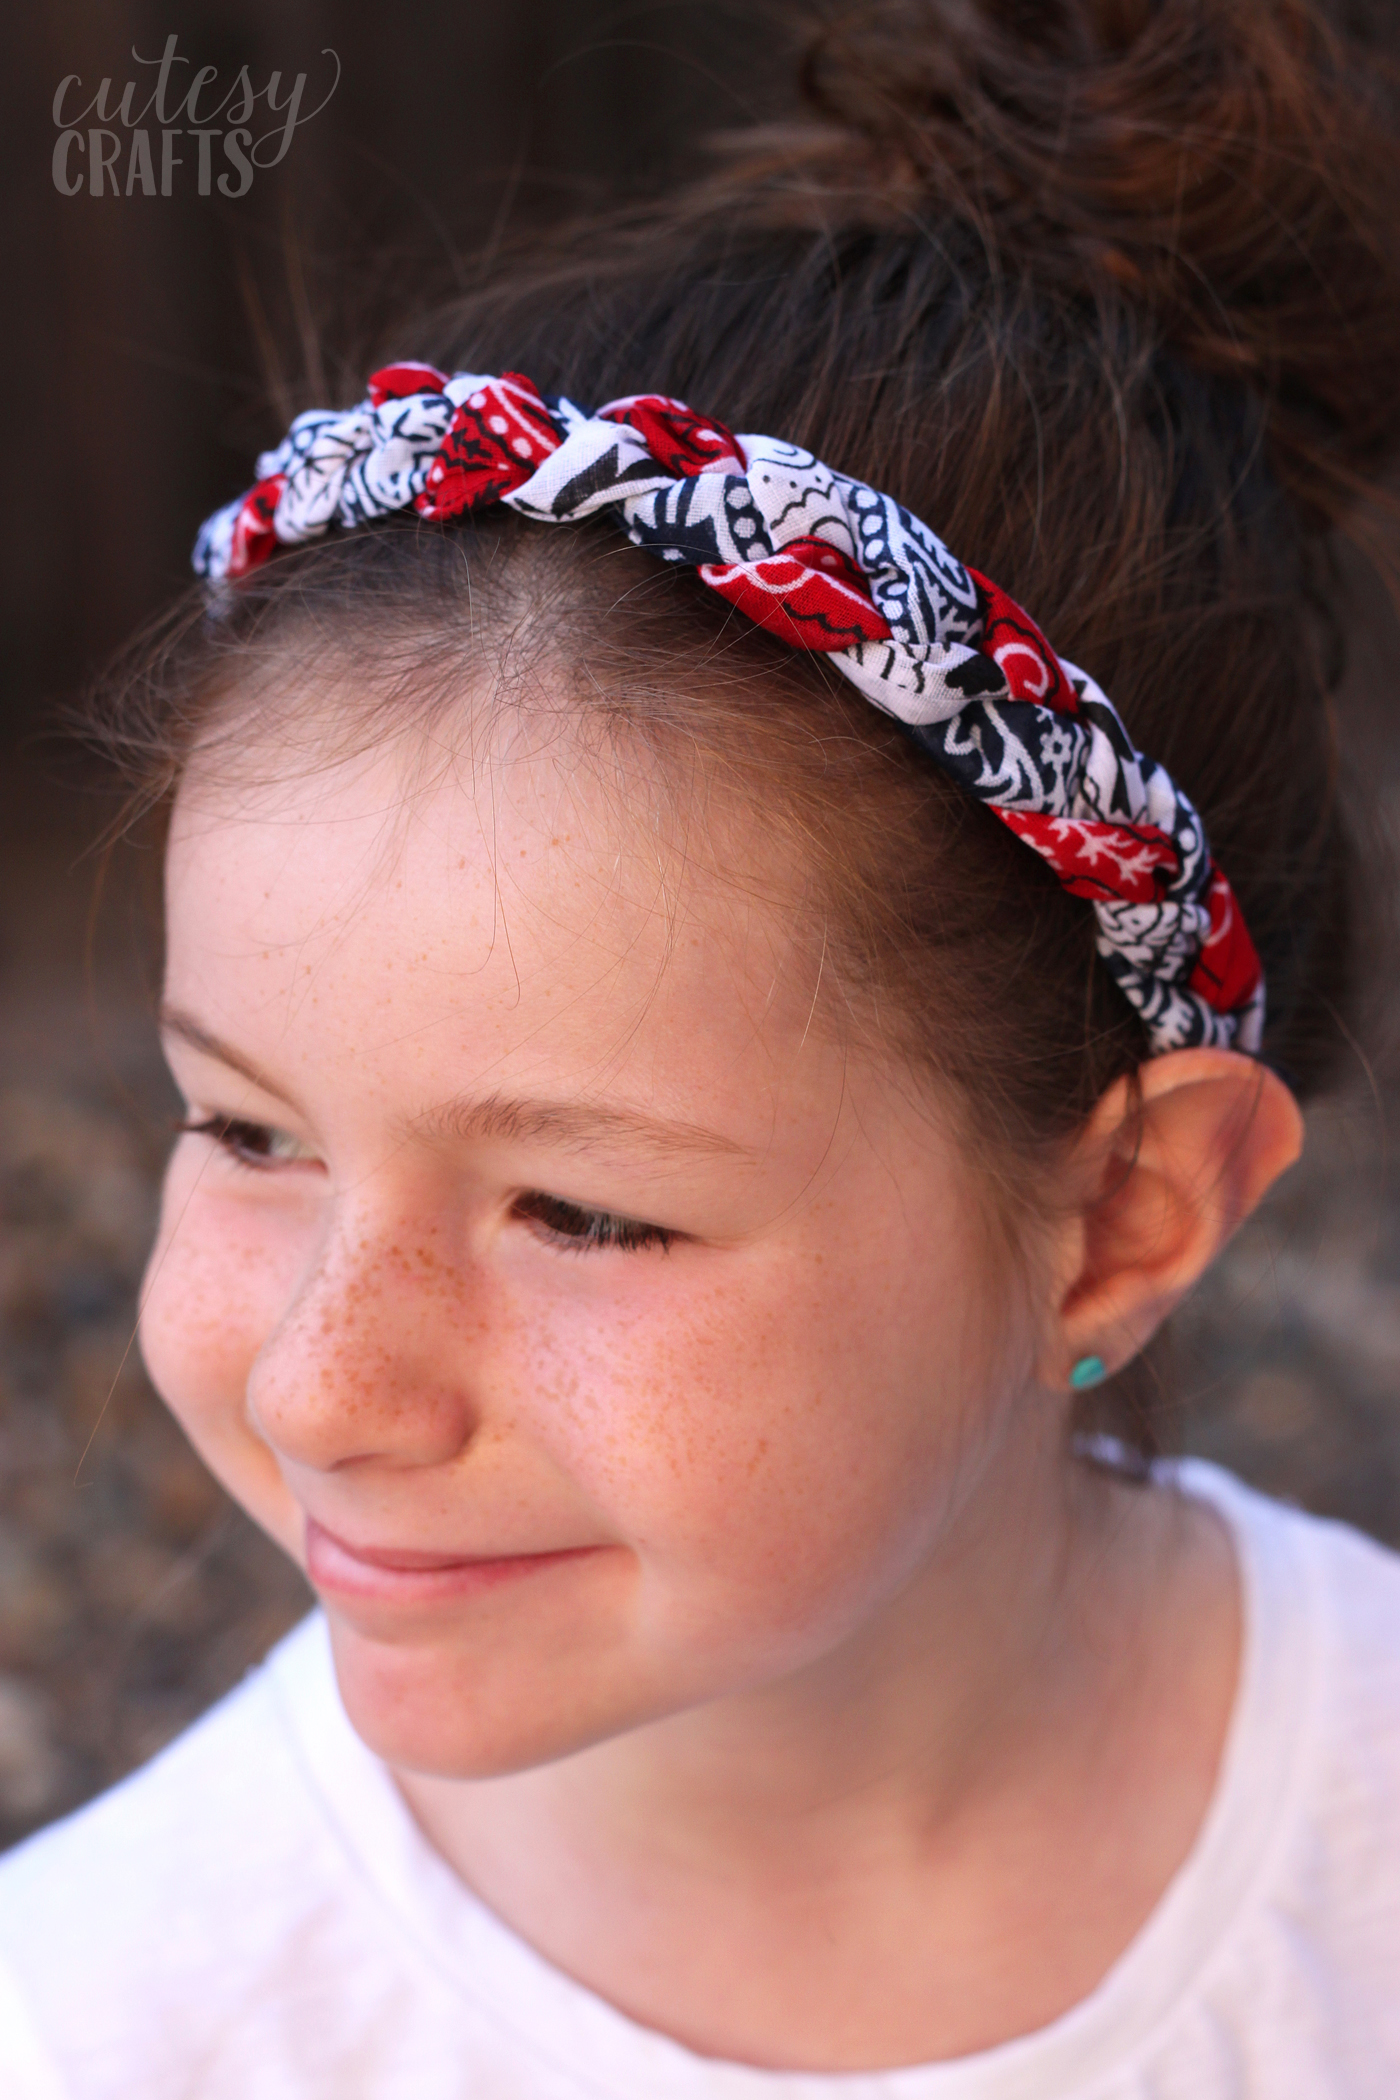 Learn how to make a bandana headband